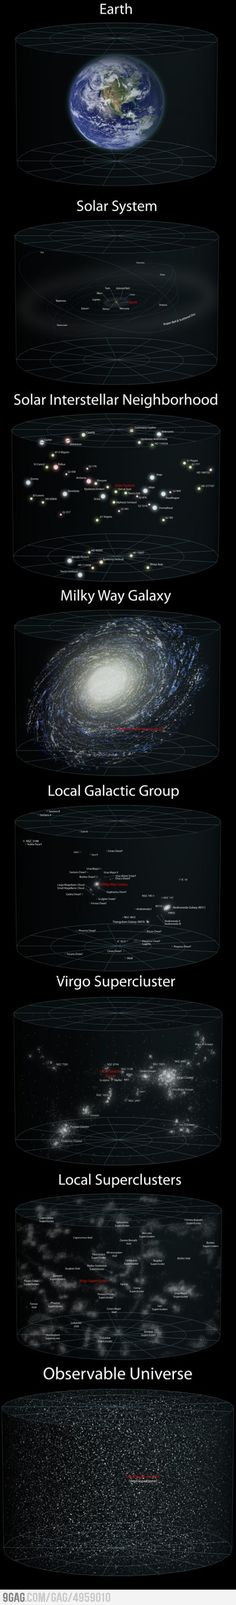 Earth, Solar System, Galactic Magnificent. Note: the only problem with this illustration is that the Milky Way is probably more of a barred spiral, rather than the portrayed circular spiral.